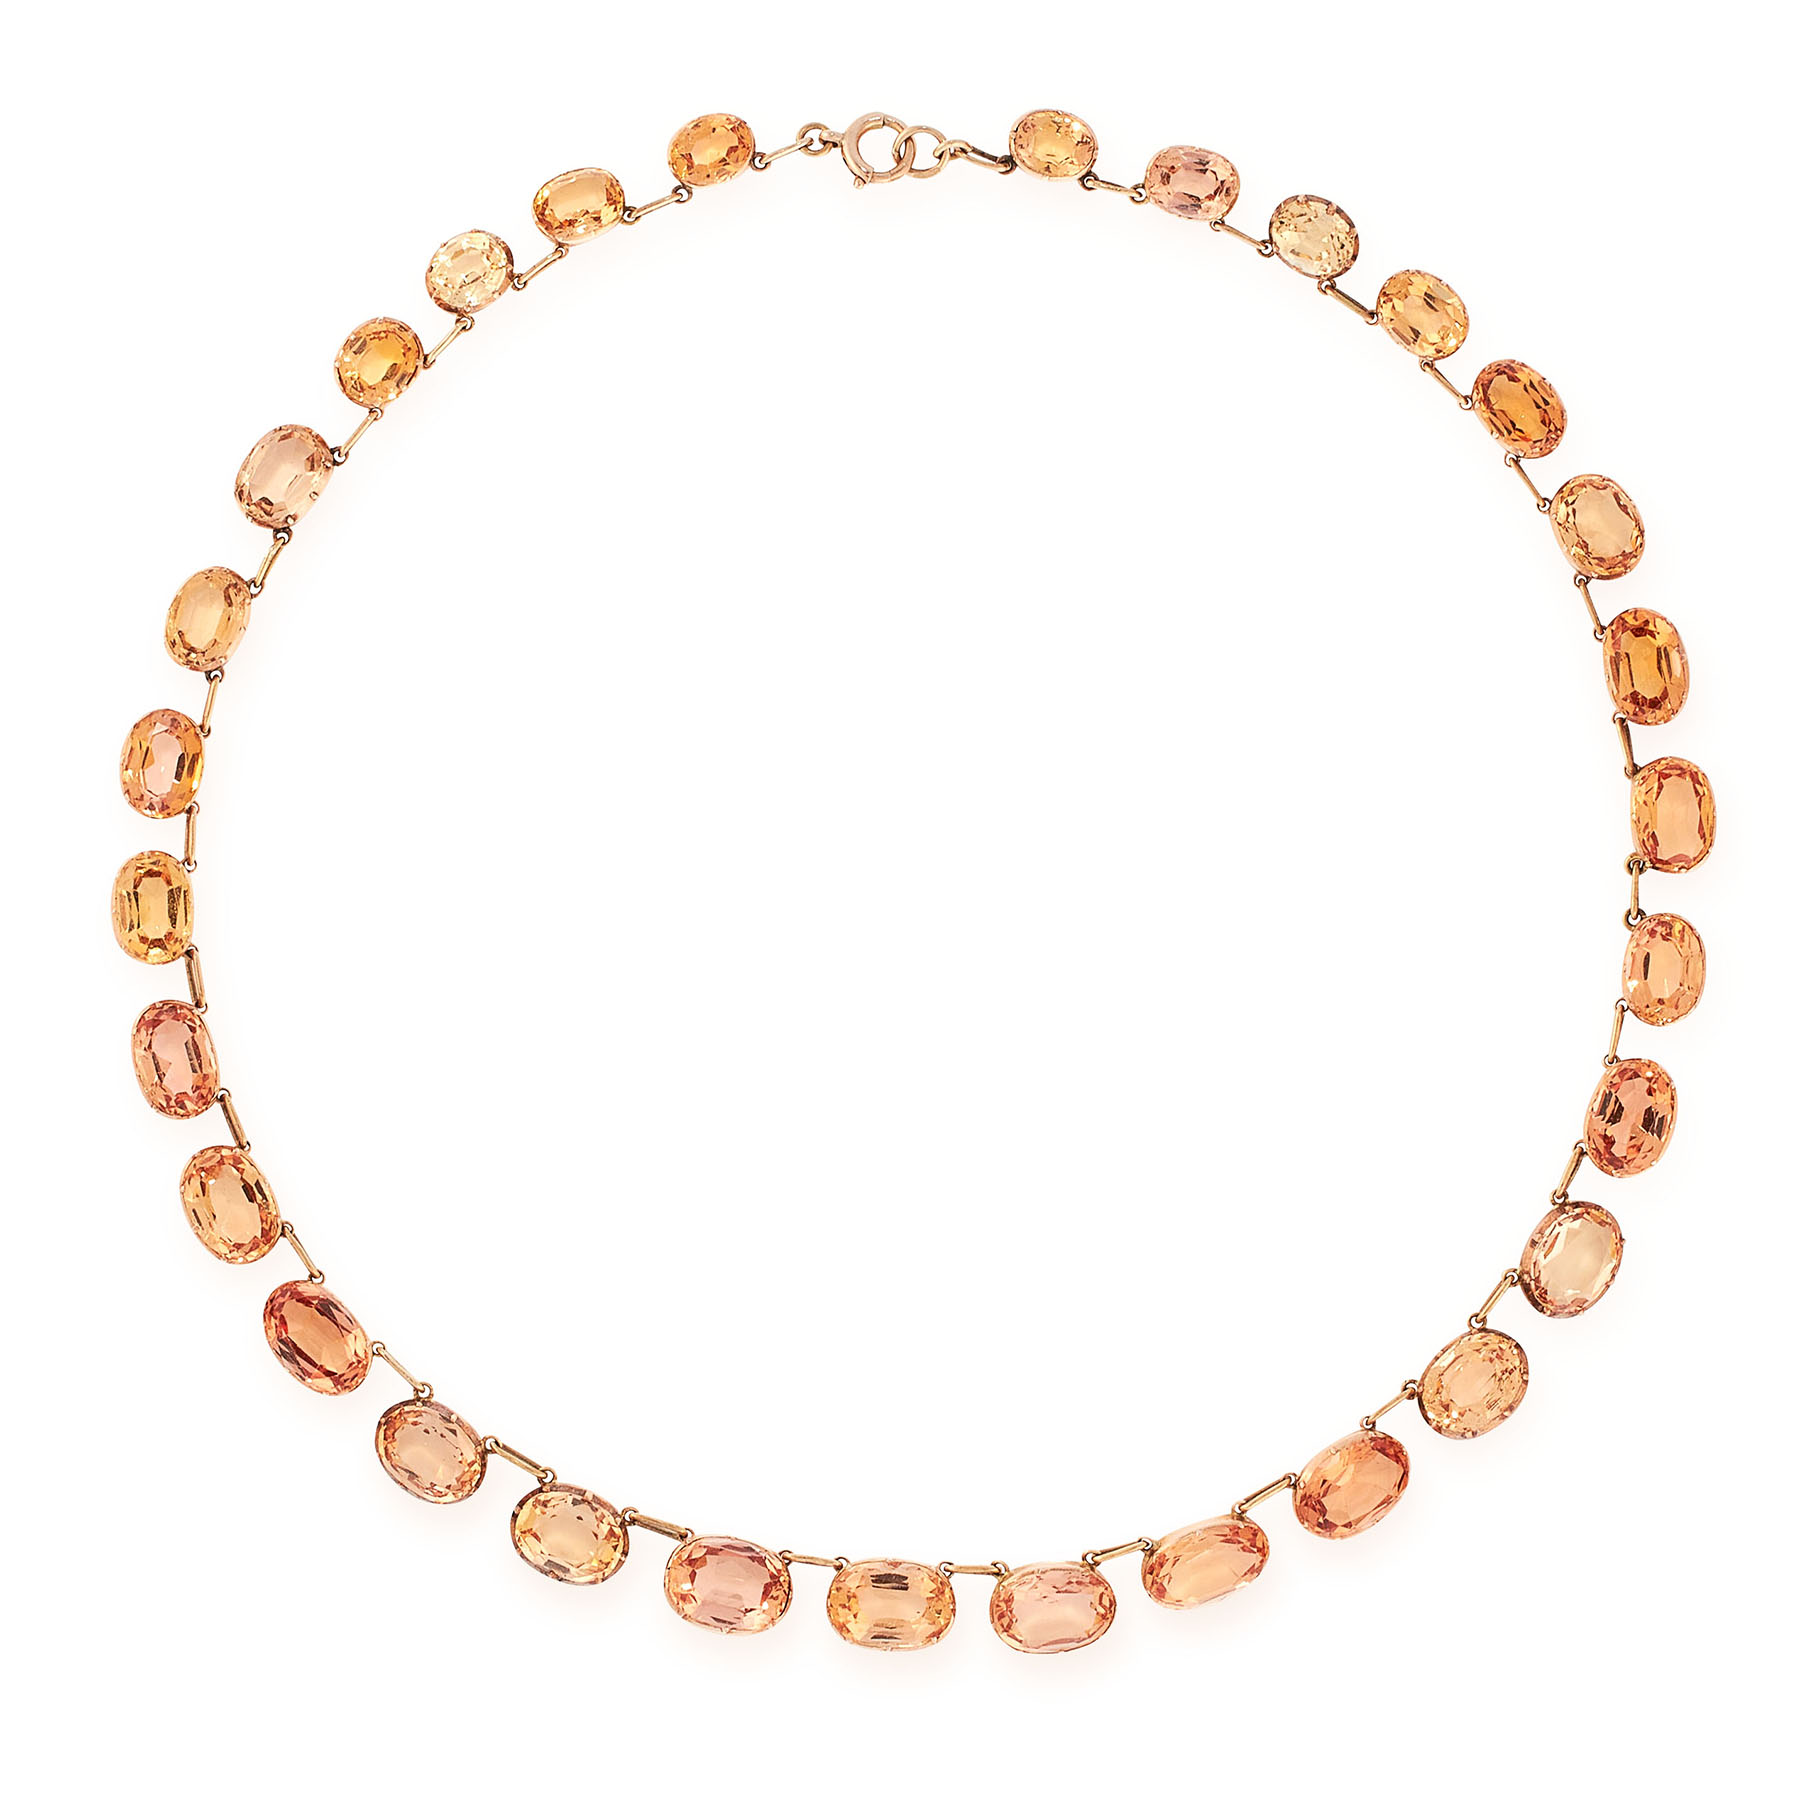 AN ANTIQUE IMPERIAL TOPAZ RIVIERE NECKLACE, 19TH CENTURY in yellow gold, comprising a single row